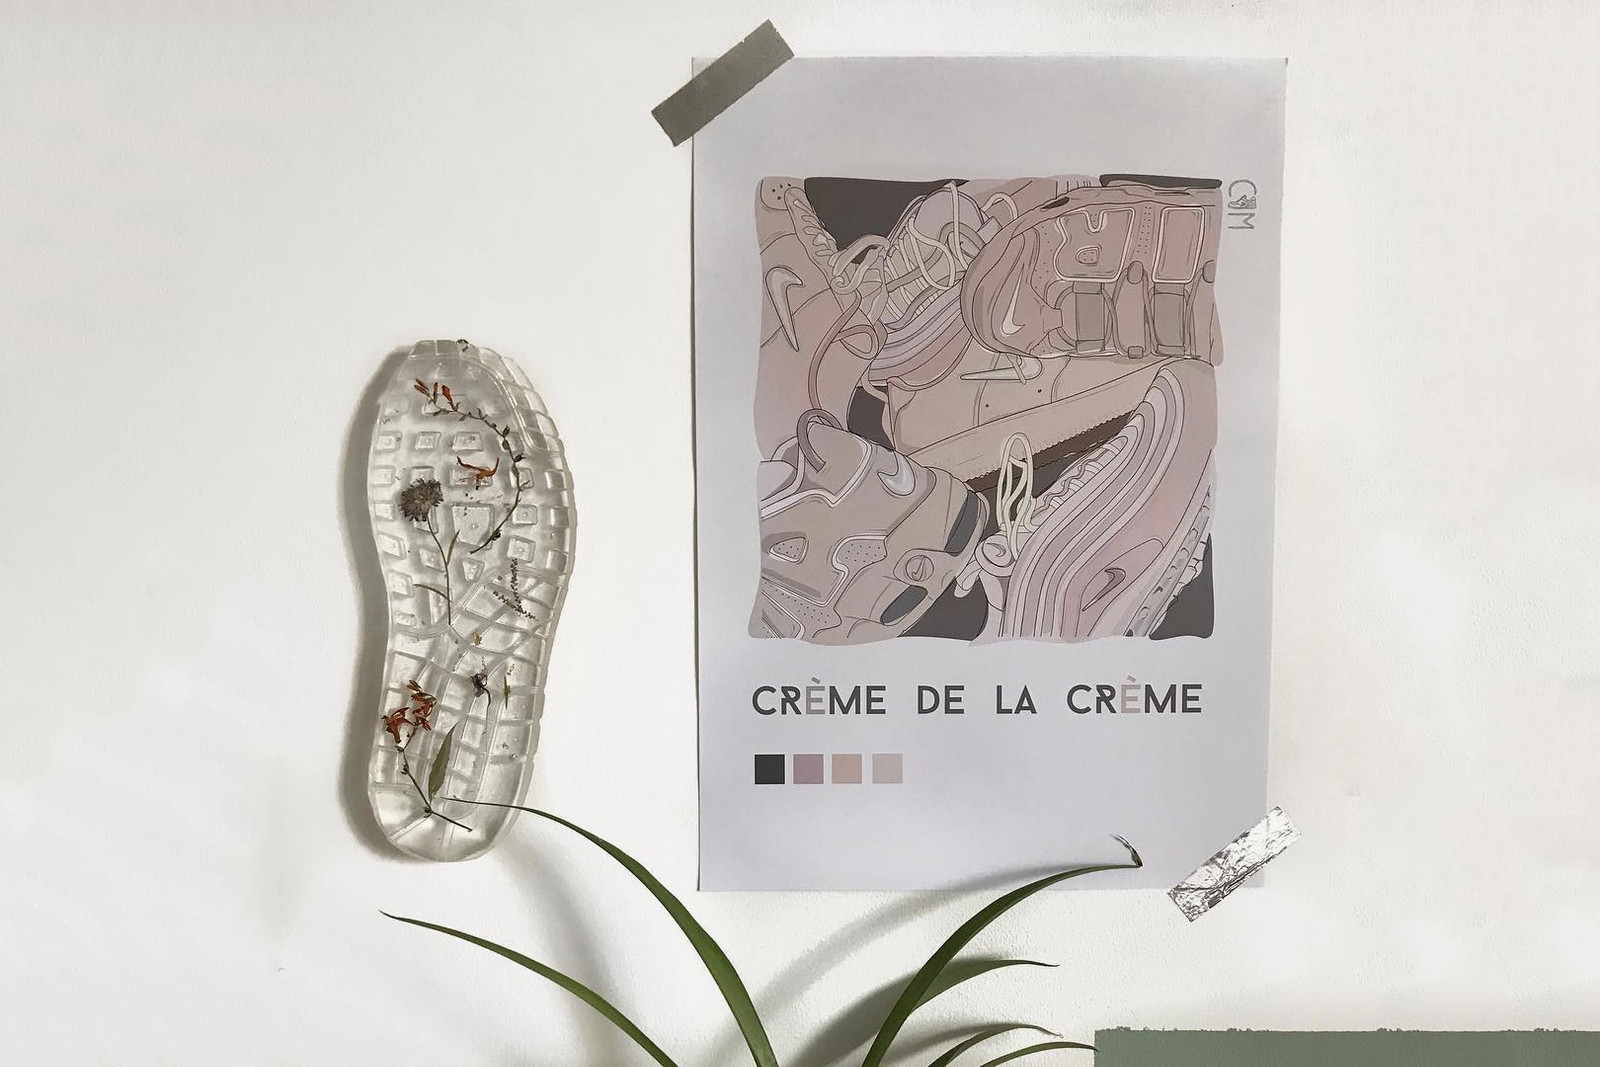 Clémence Chasselon Nike Resin Sneaker Sole Artist L'empreinte design Interview